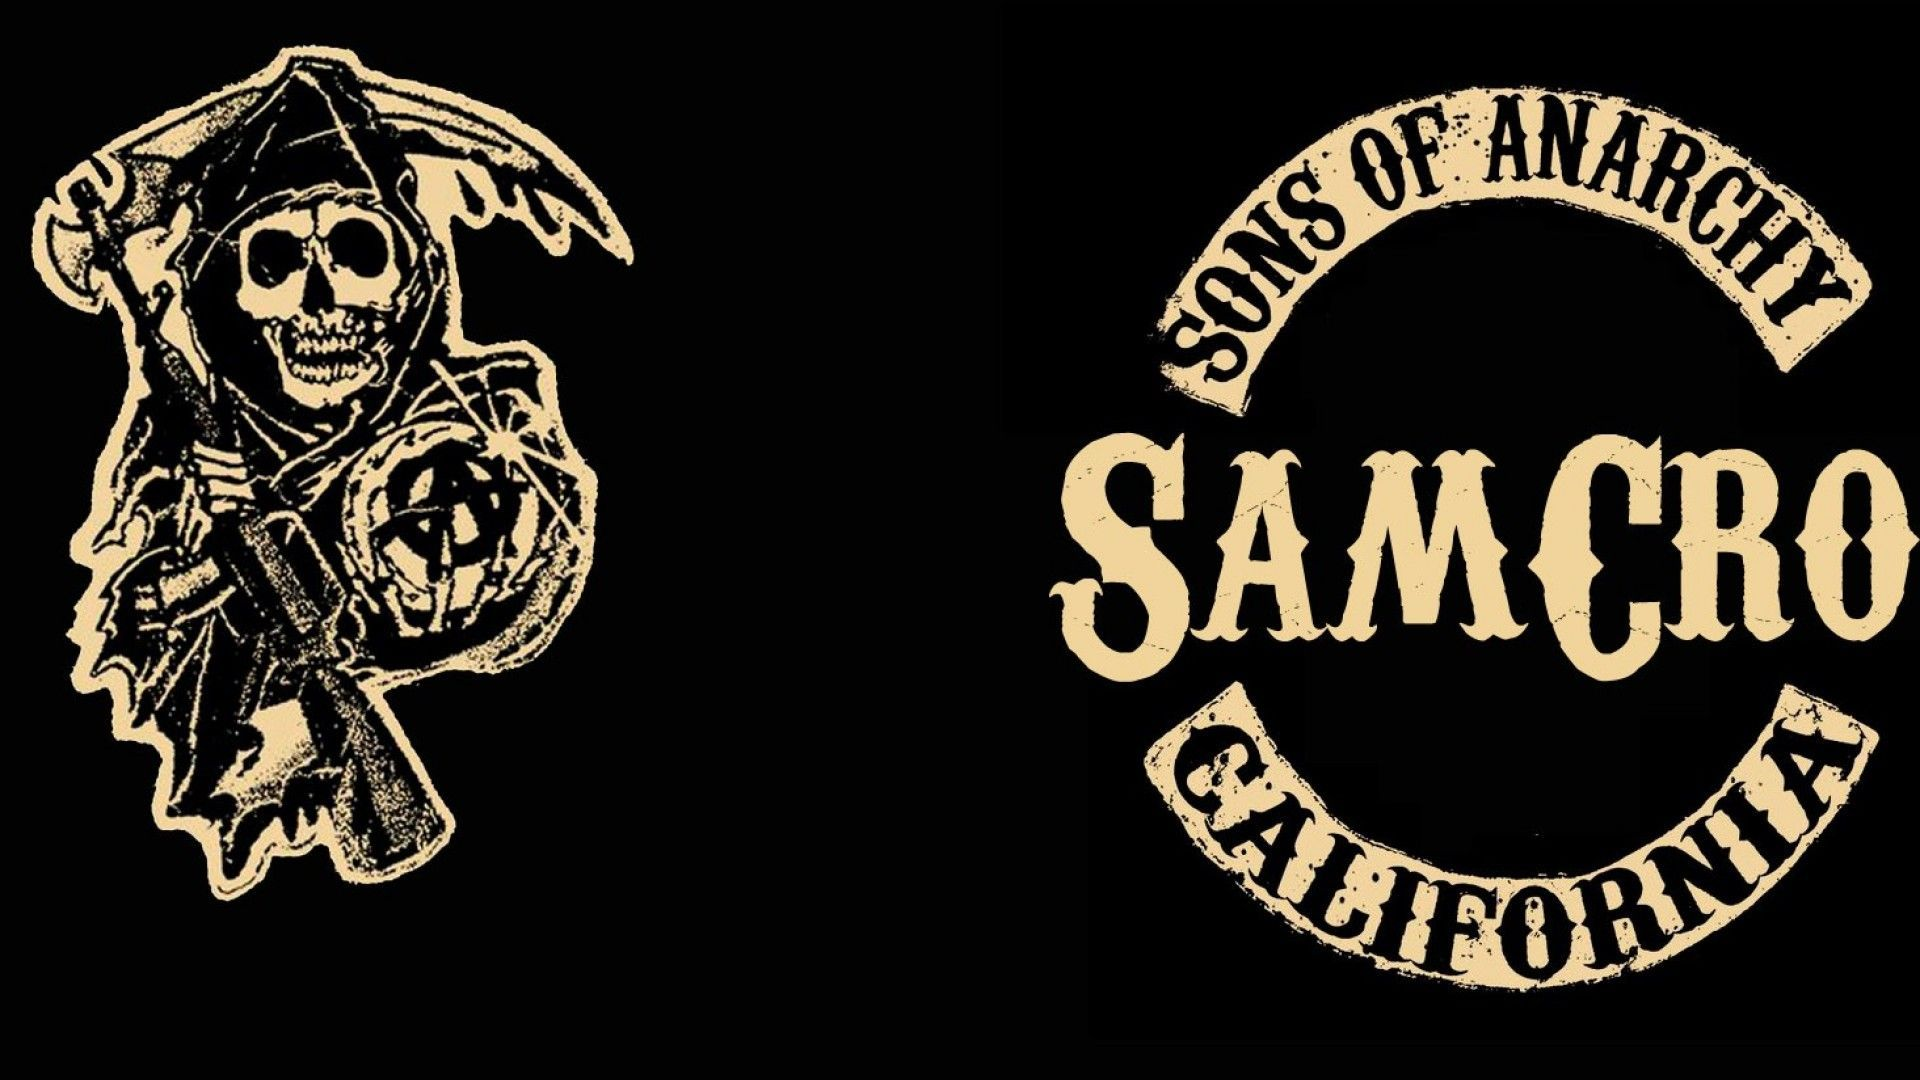 Sons Of Anarchy Reaper Wallpapers Top Free Sons Of Anarchy